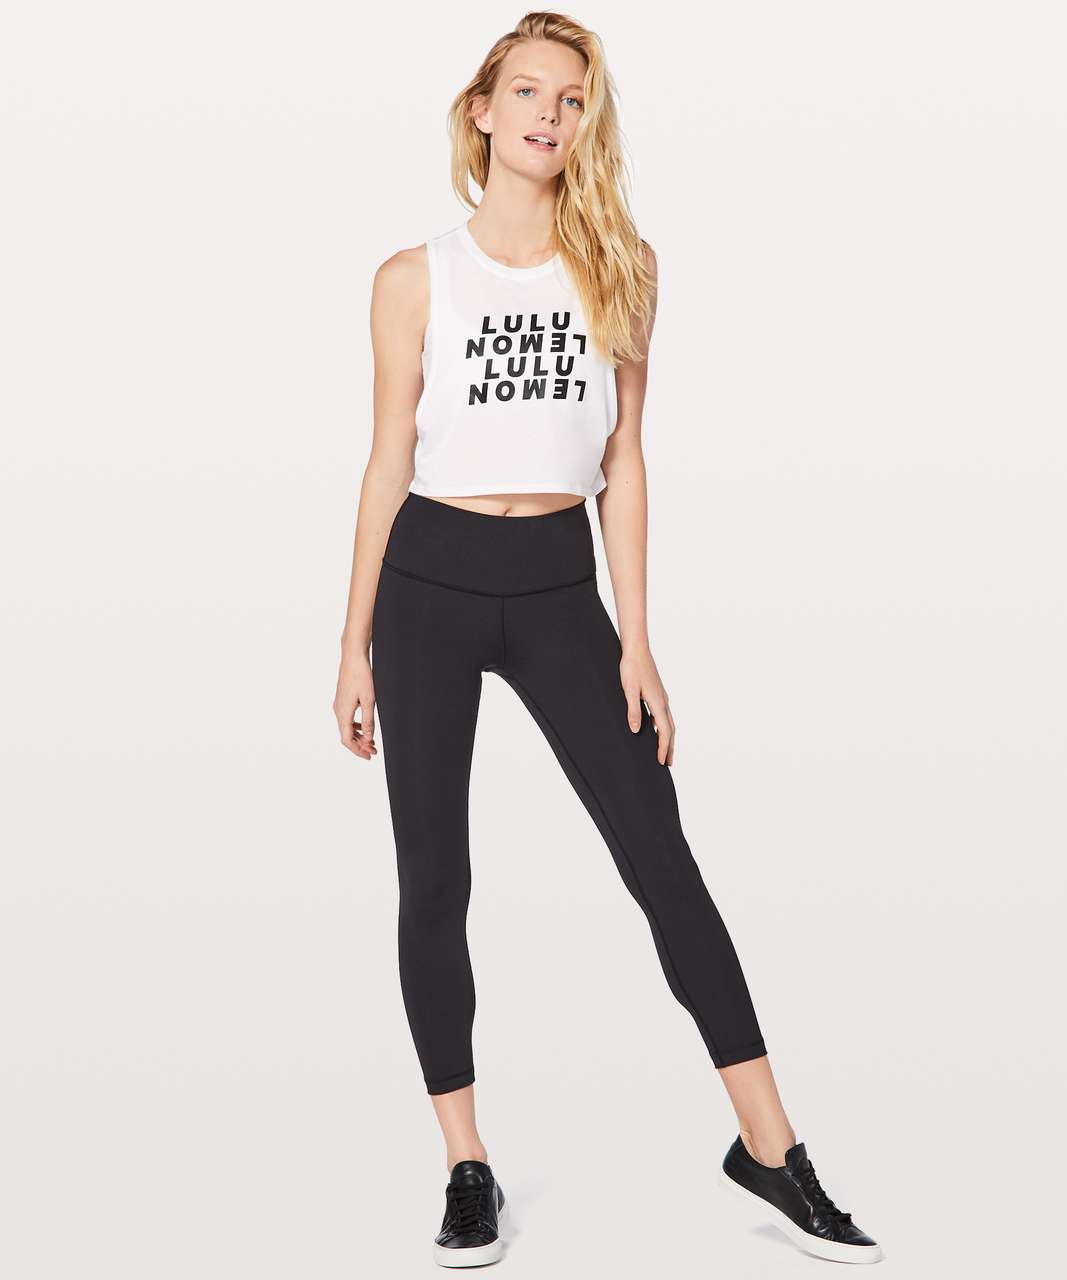 Lululemon Muscle Love Crop Tank *Expression - White